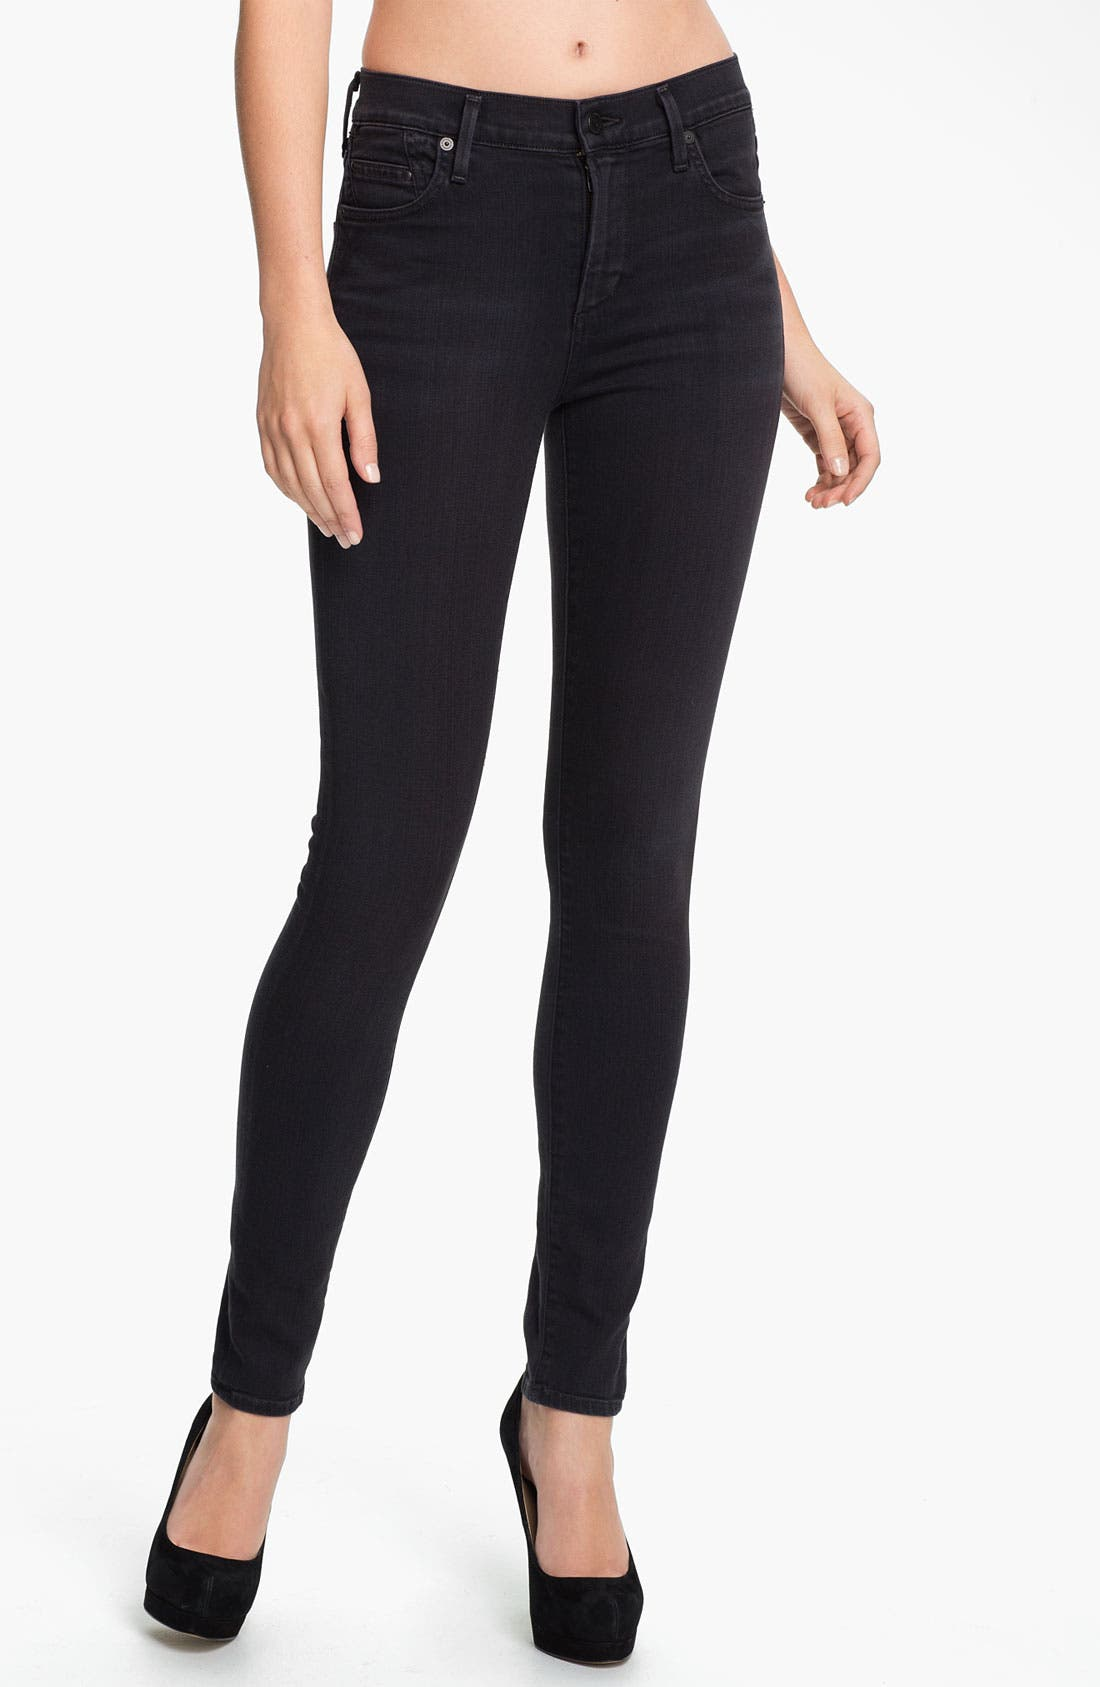 Main Image - Citizens of Humanity 'Rocket' High Rise Skinny Jeans (Goth)